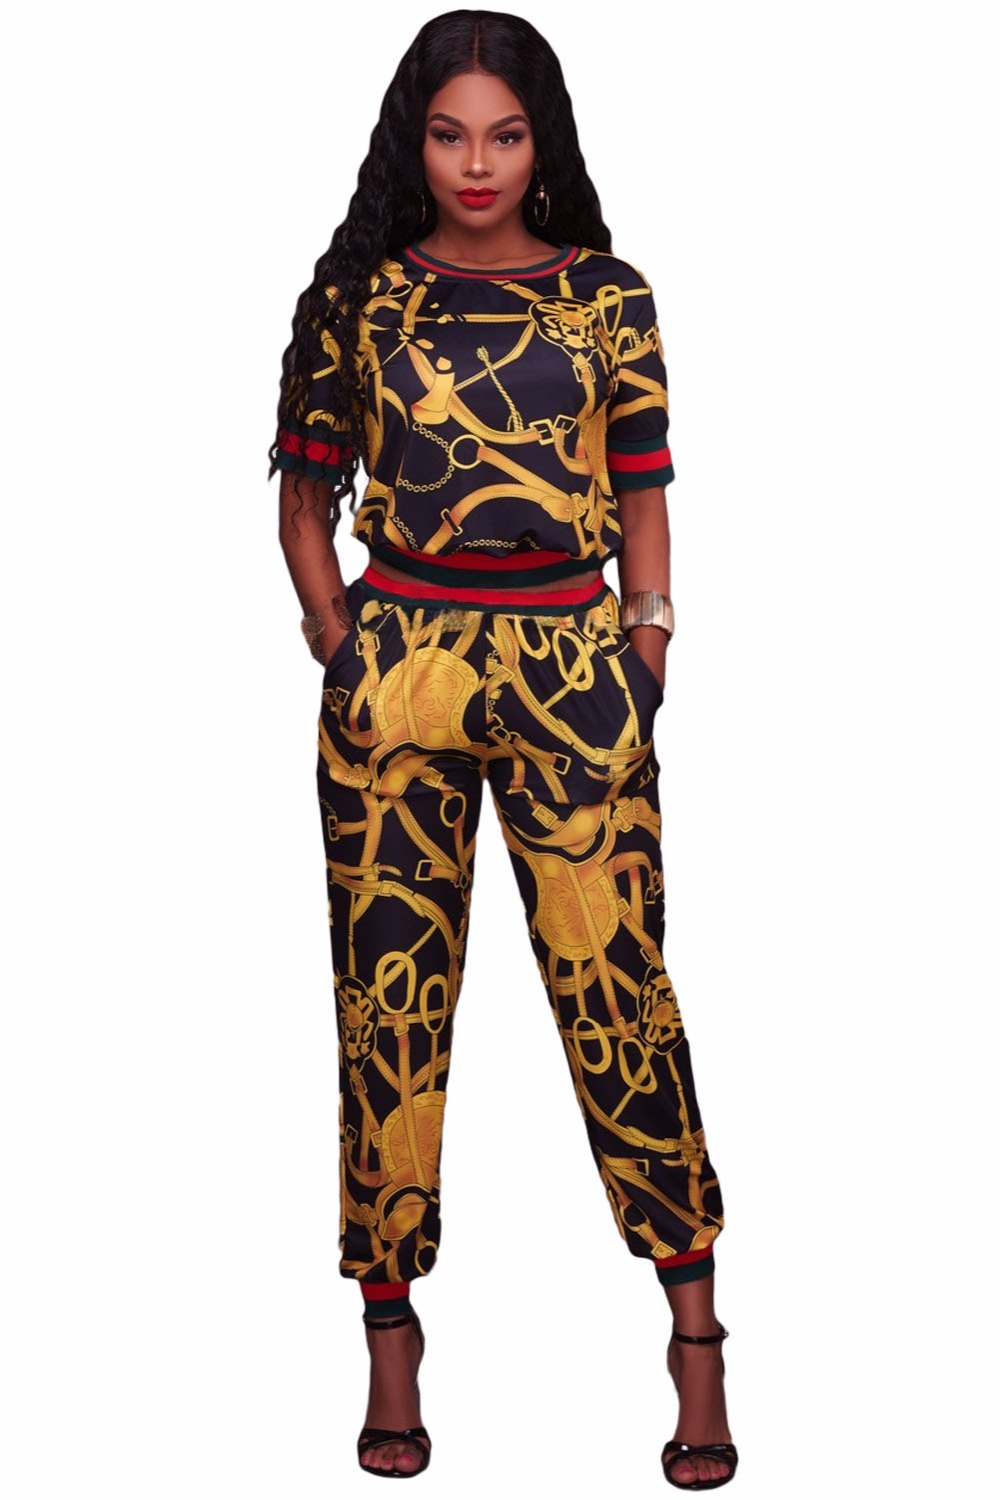 2017 New Style Overoles Women Tracksuits Set Vintage Streetwear Two Piece Multiple Print Short Sleeve Top with Pant Set LC62071